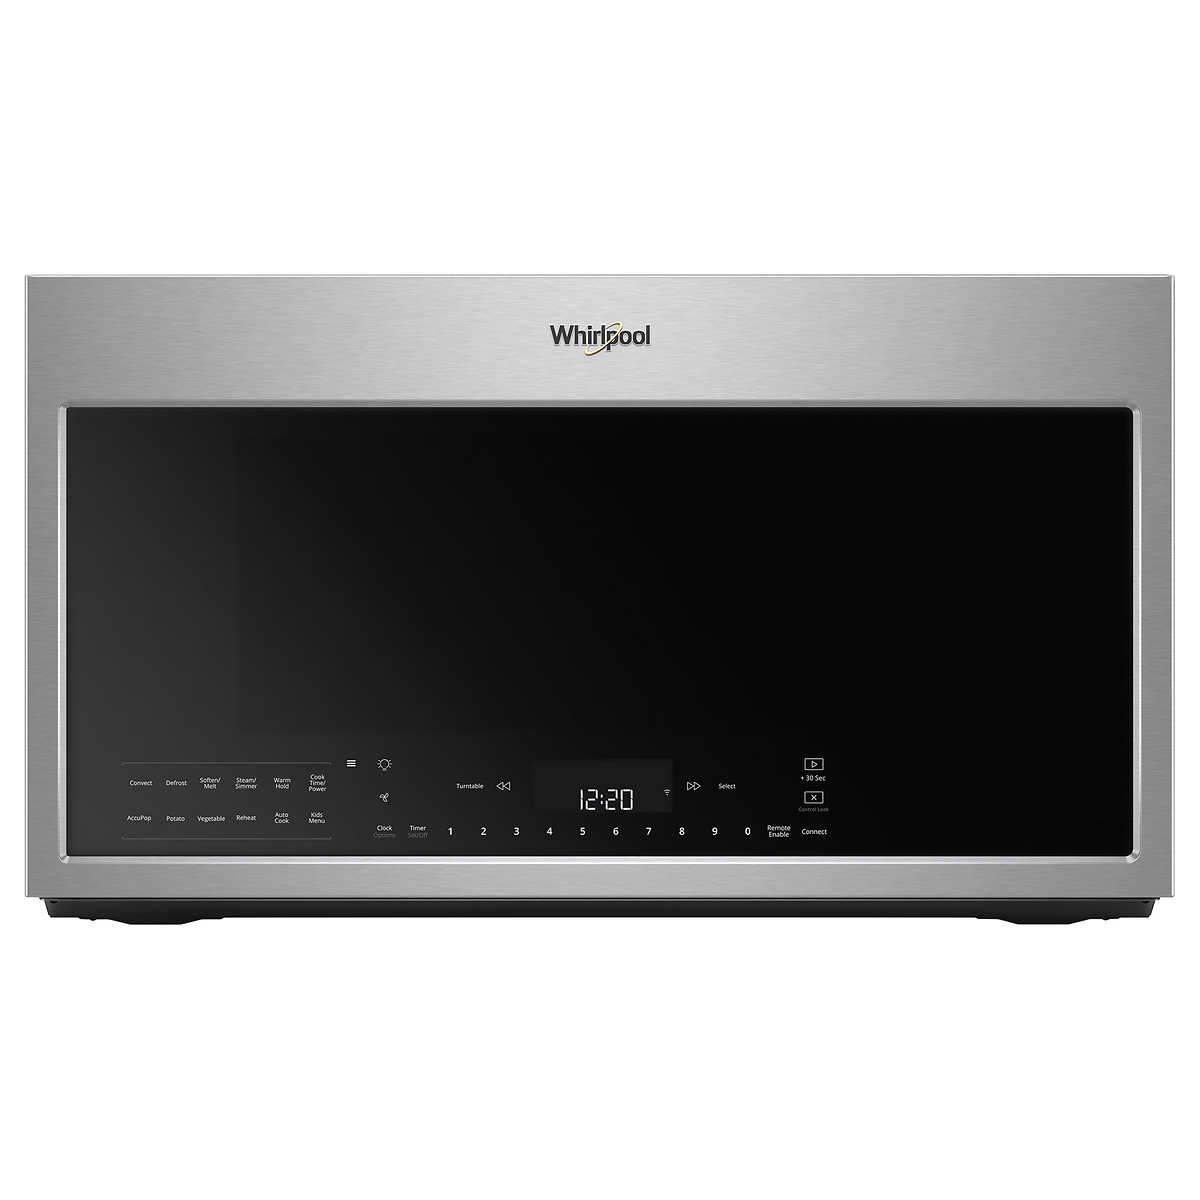 LG 2 2CuFt Over-the-Range Microwave Oven